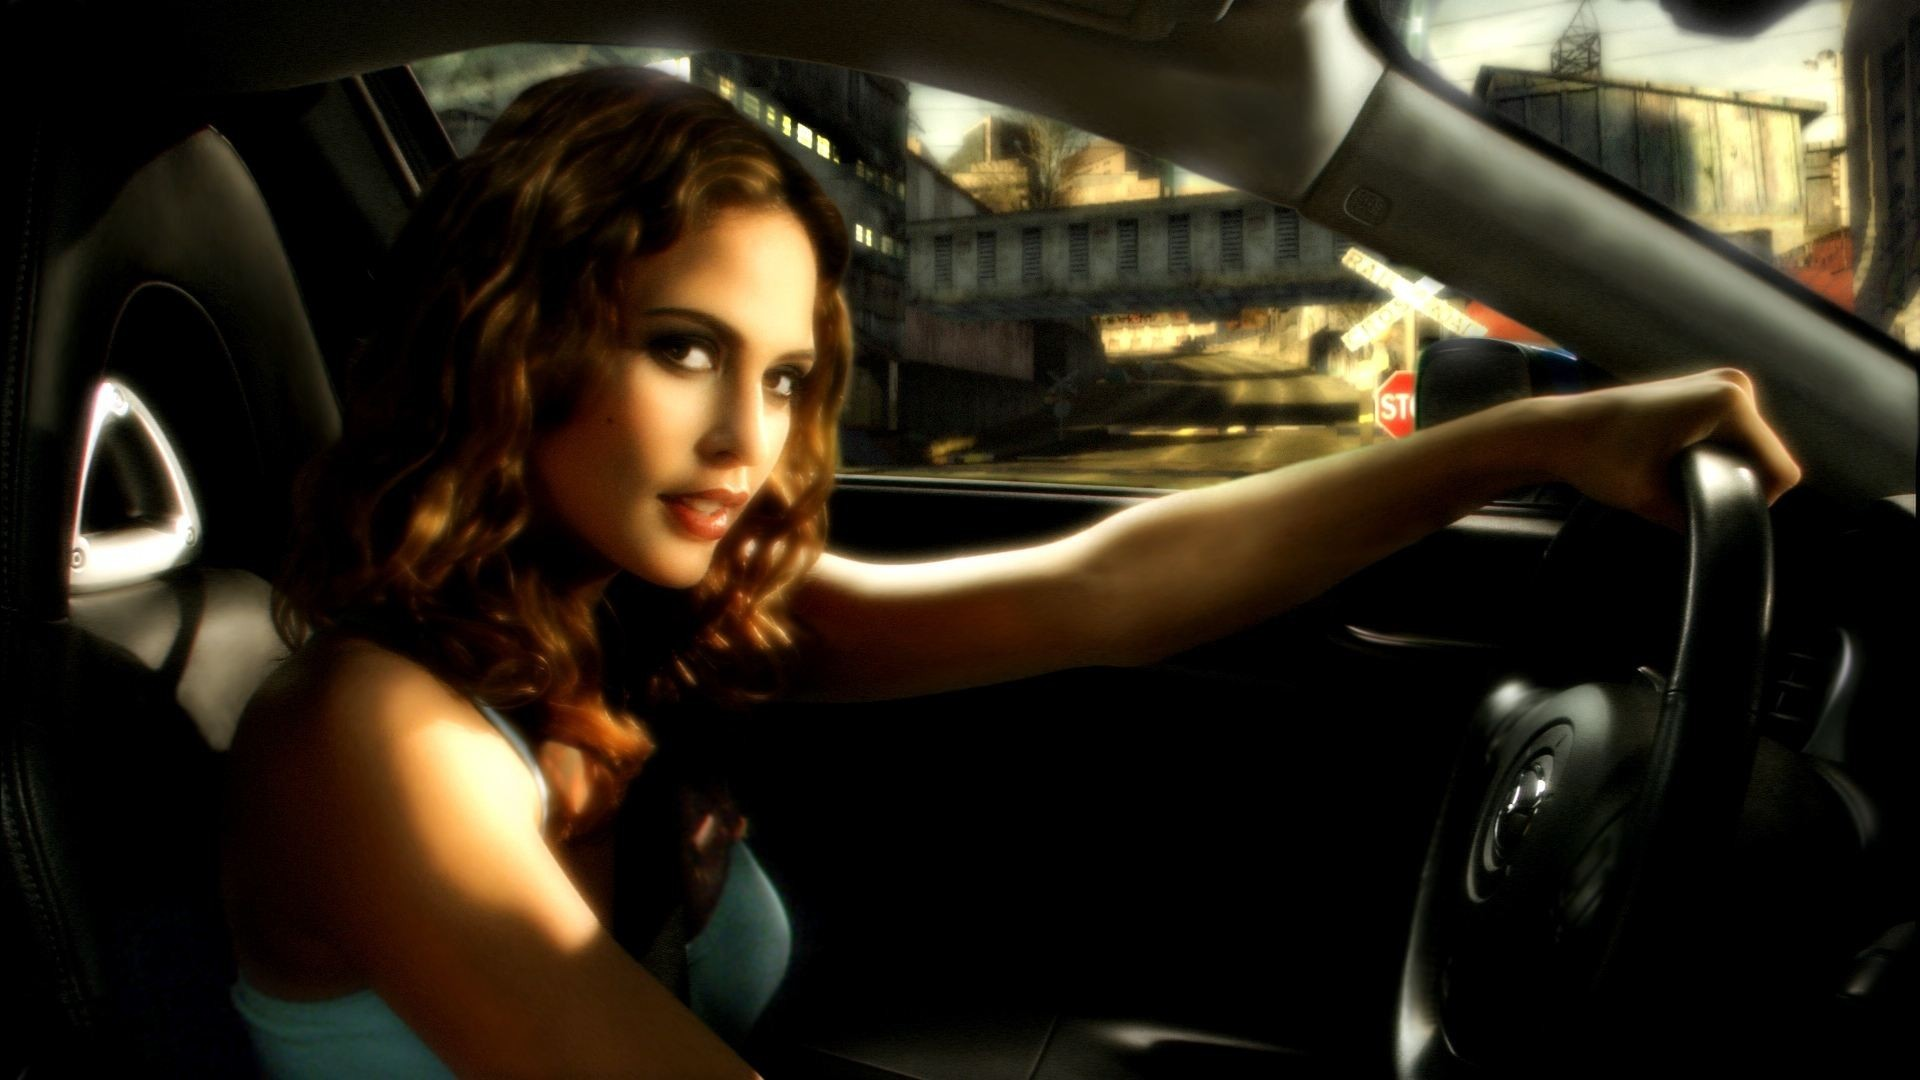 Need For Speed Most Wanted Mia Josie Maran Girl With Cars